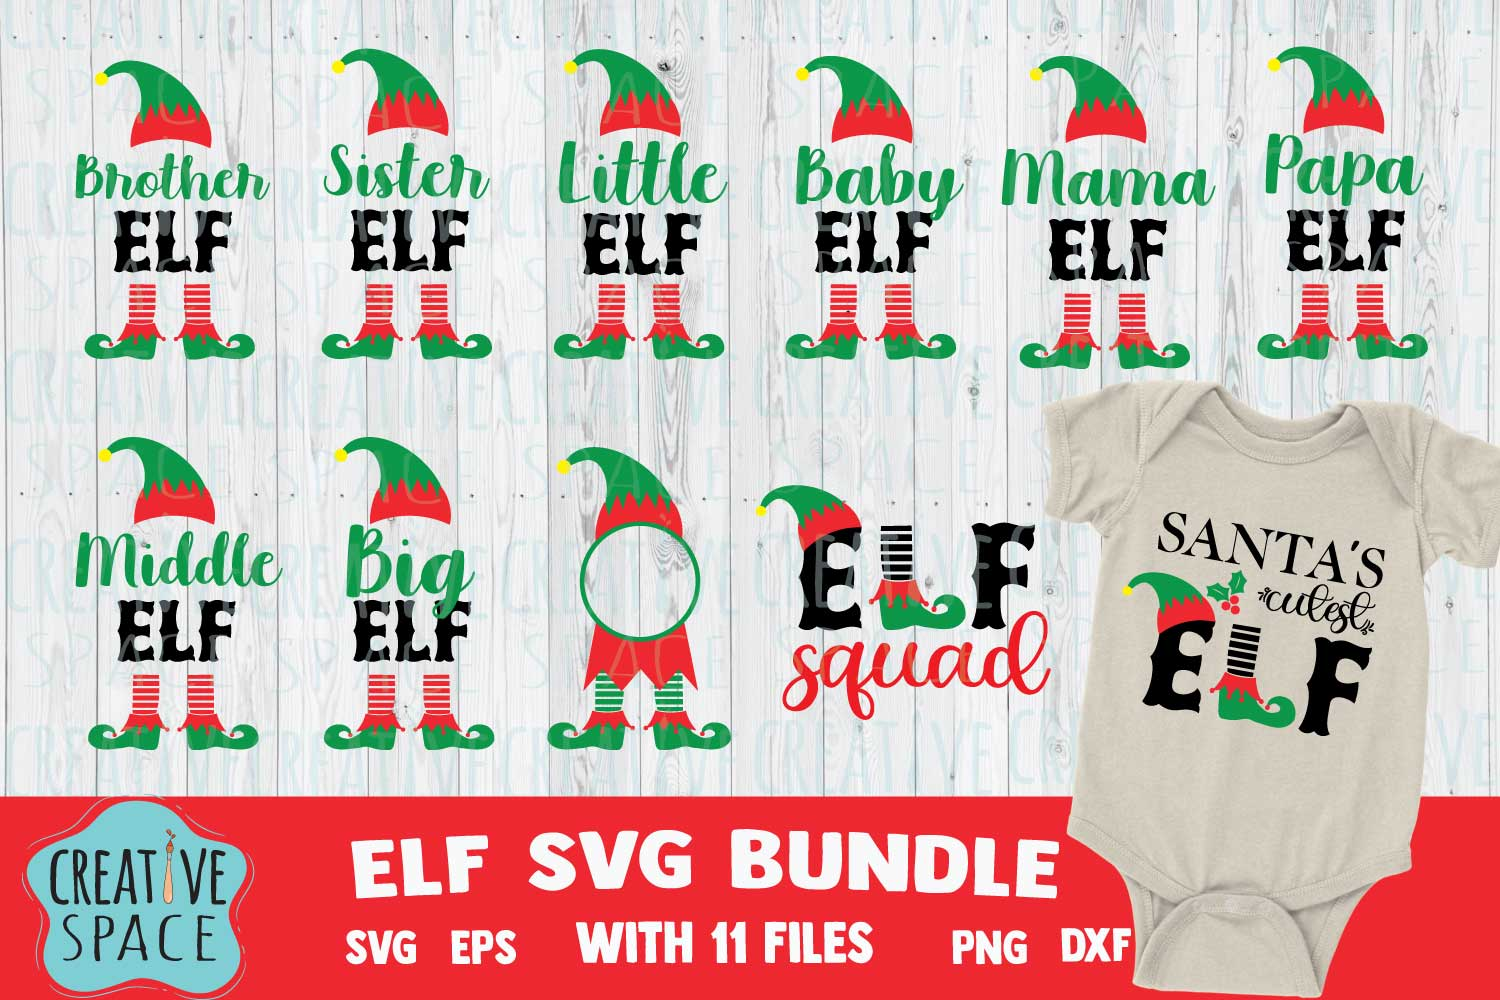 Download Free Elf Bundle Graphic By Creativespace Creative Fabrica for Cricut Explore, Silhouette and other cutting machines.